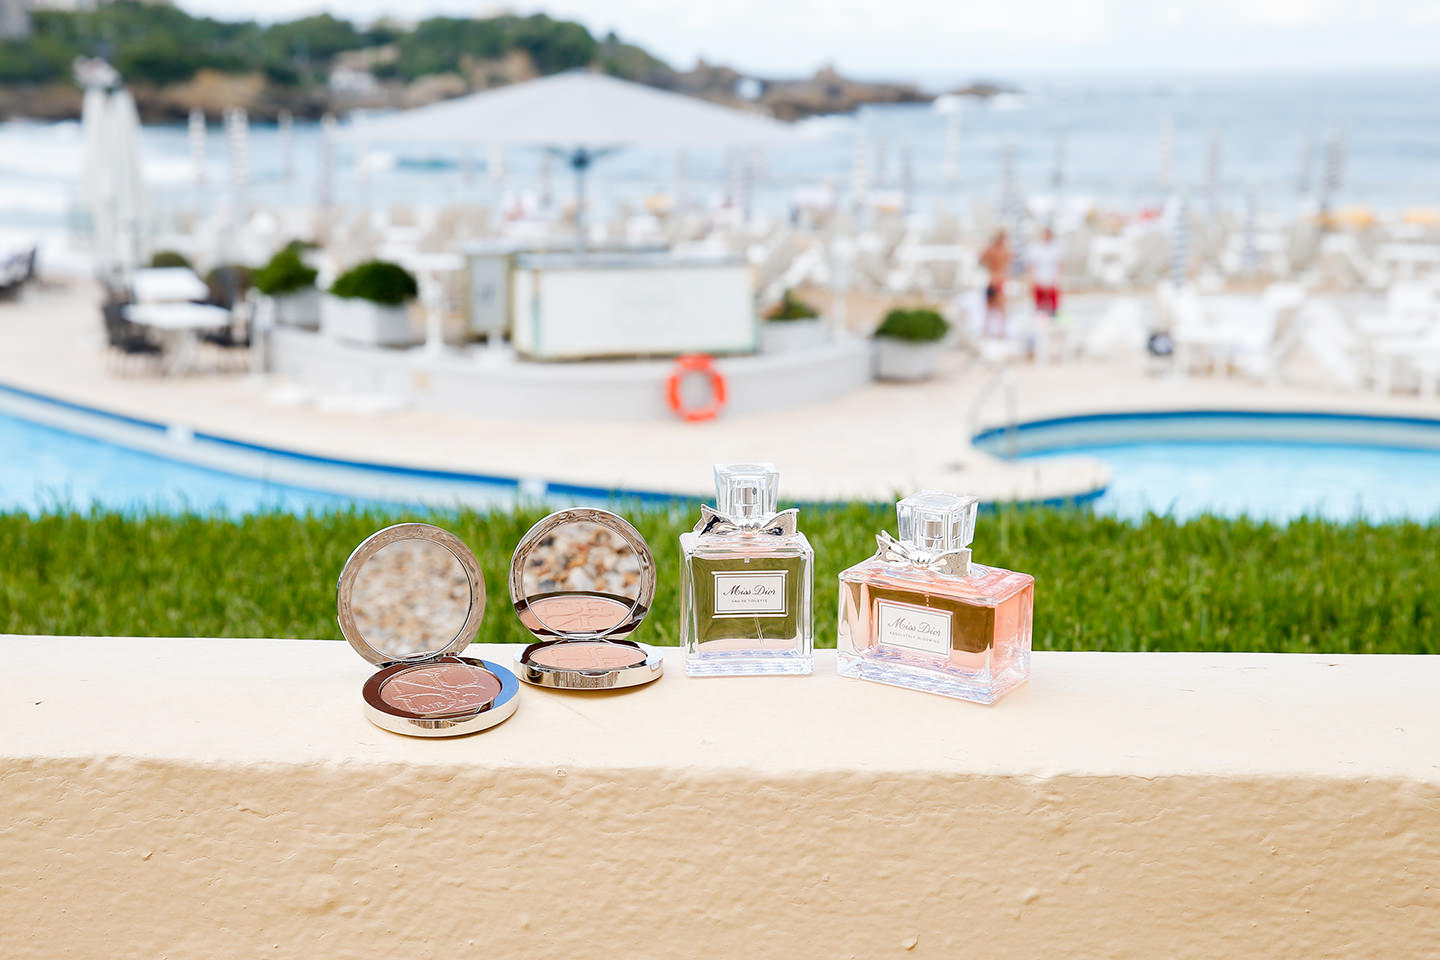 Blog-Mode-And-The-City-Lifestyle-Dior-California-Biarritz04